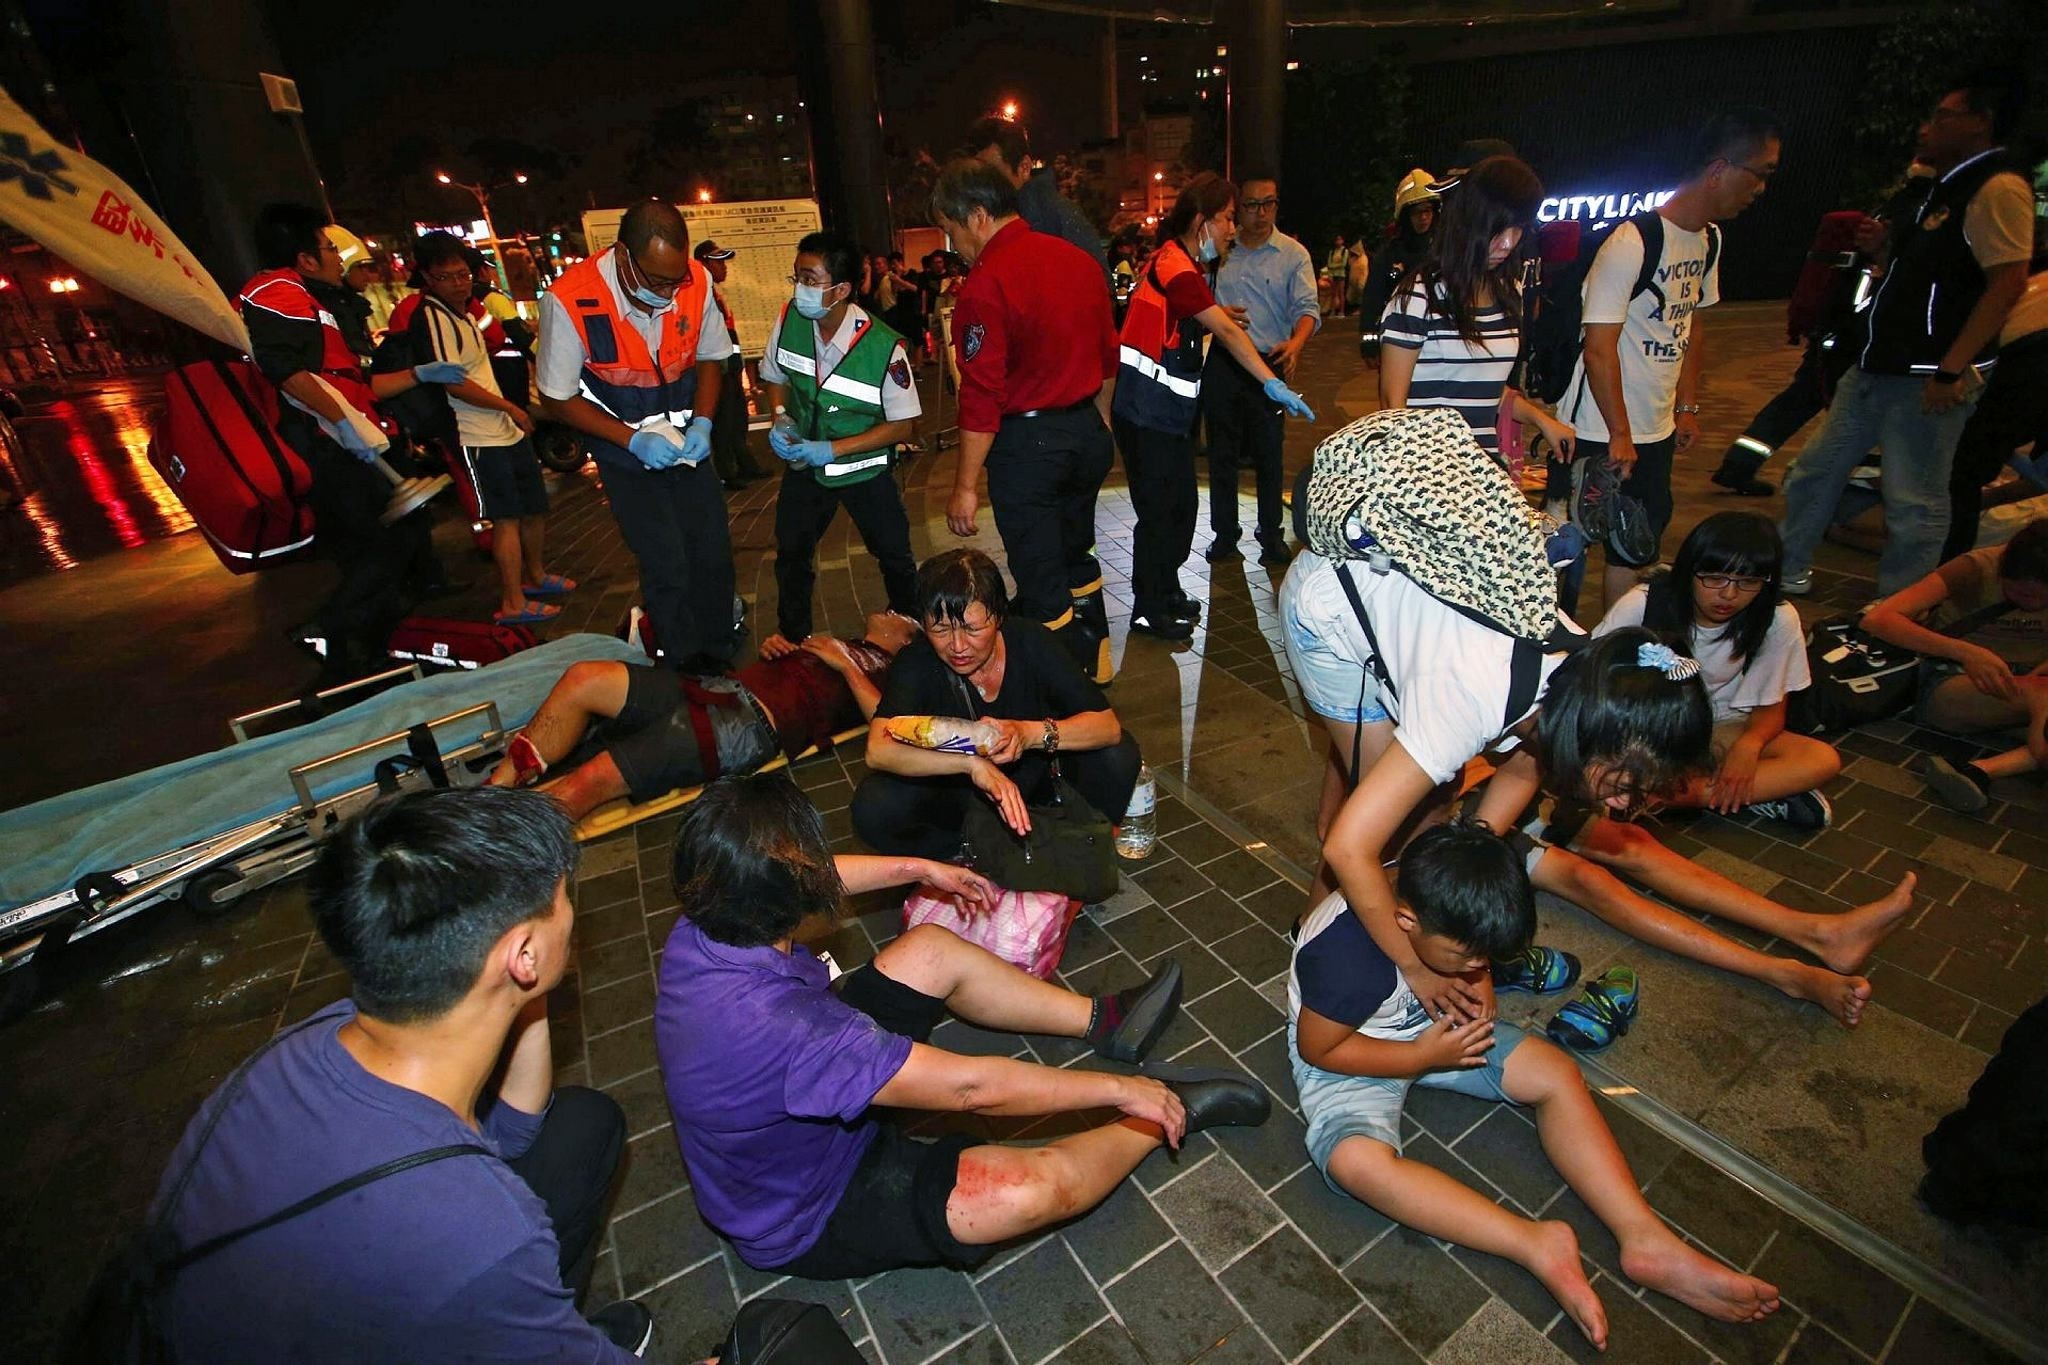 Injured people are helped by emergency rescue workers outside a station after an explosion on a passenger train in Taipei, Taiwan, Thursday, July 7, 2016. (AP Photo)